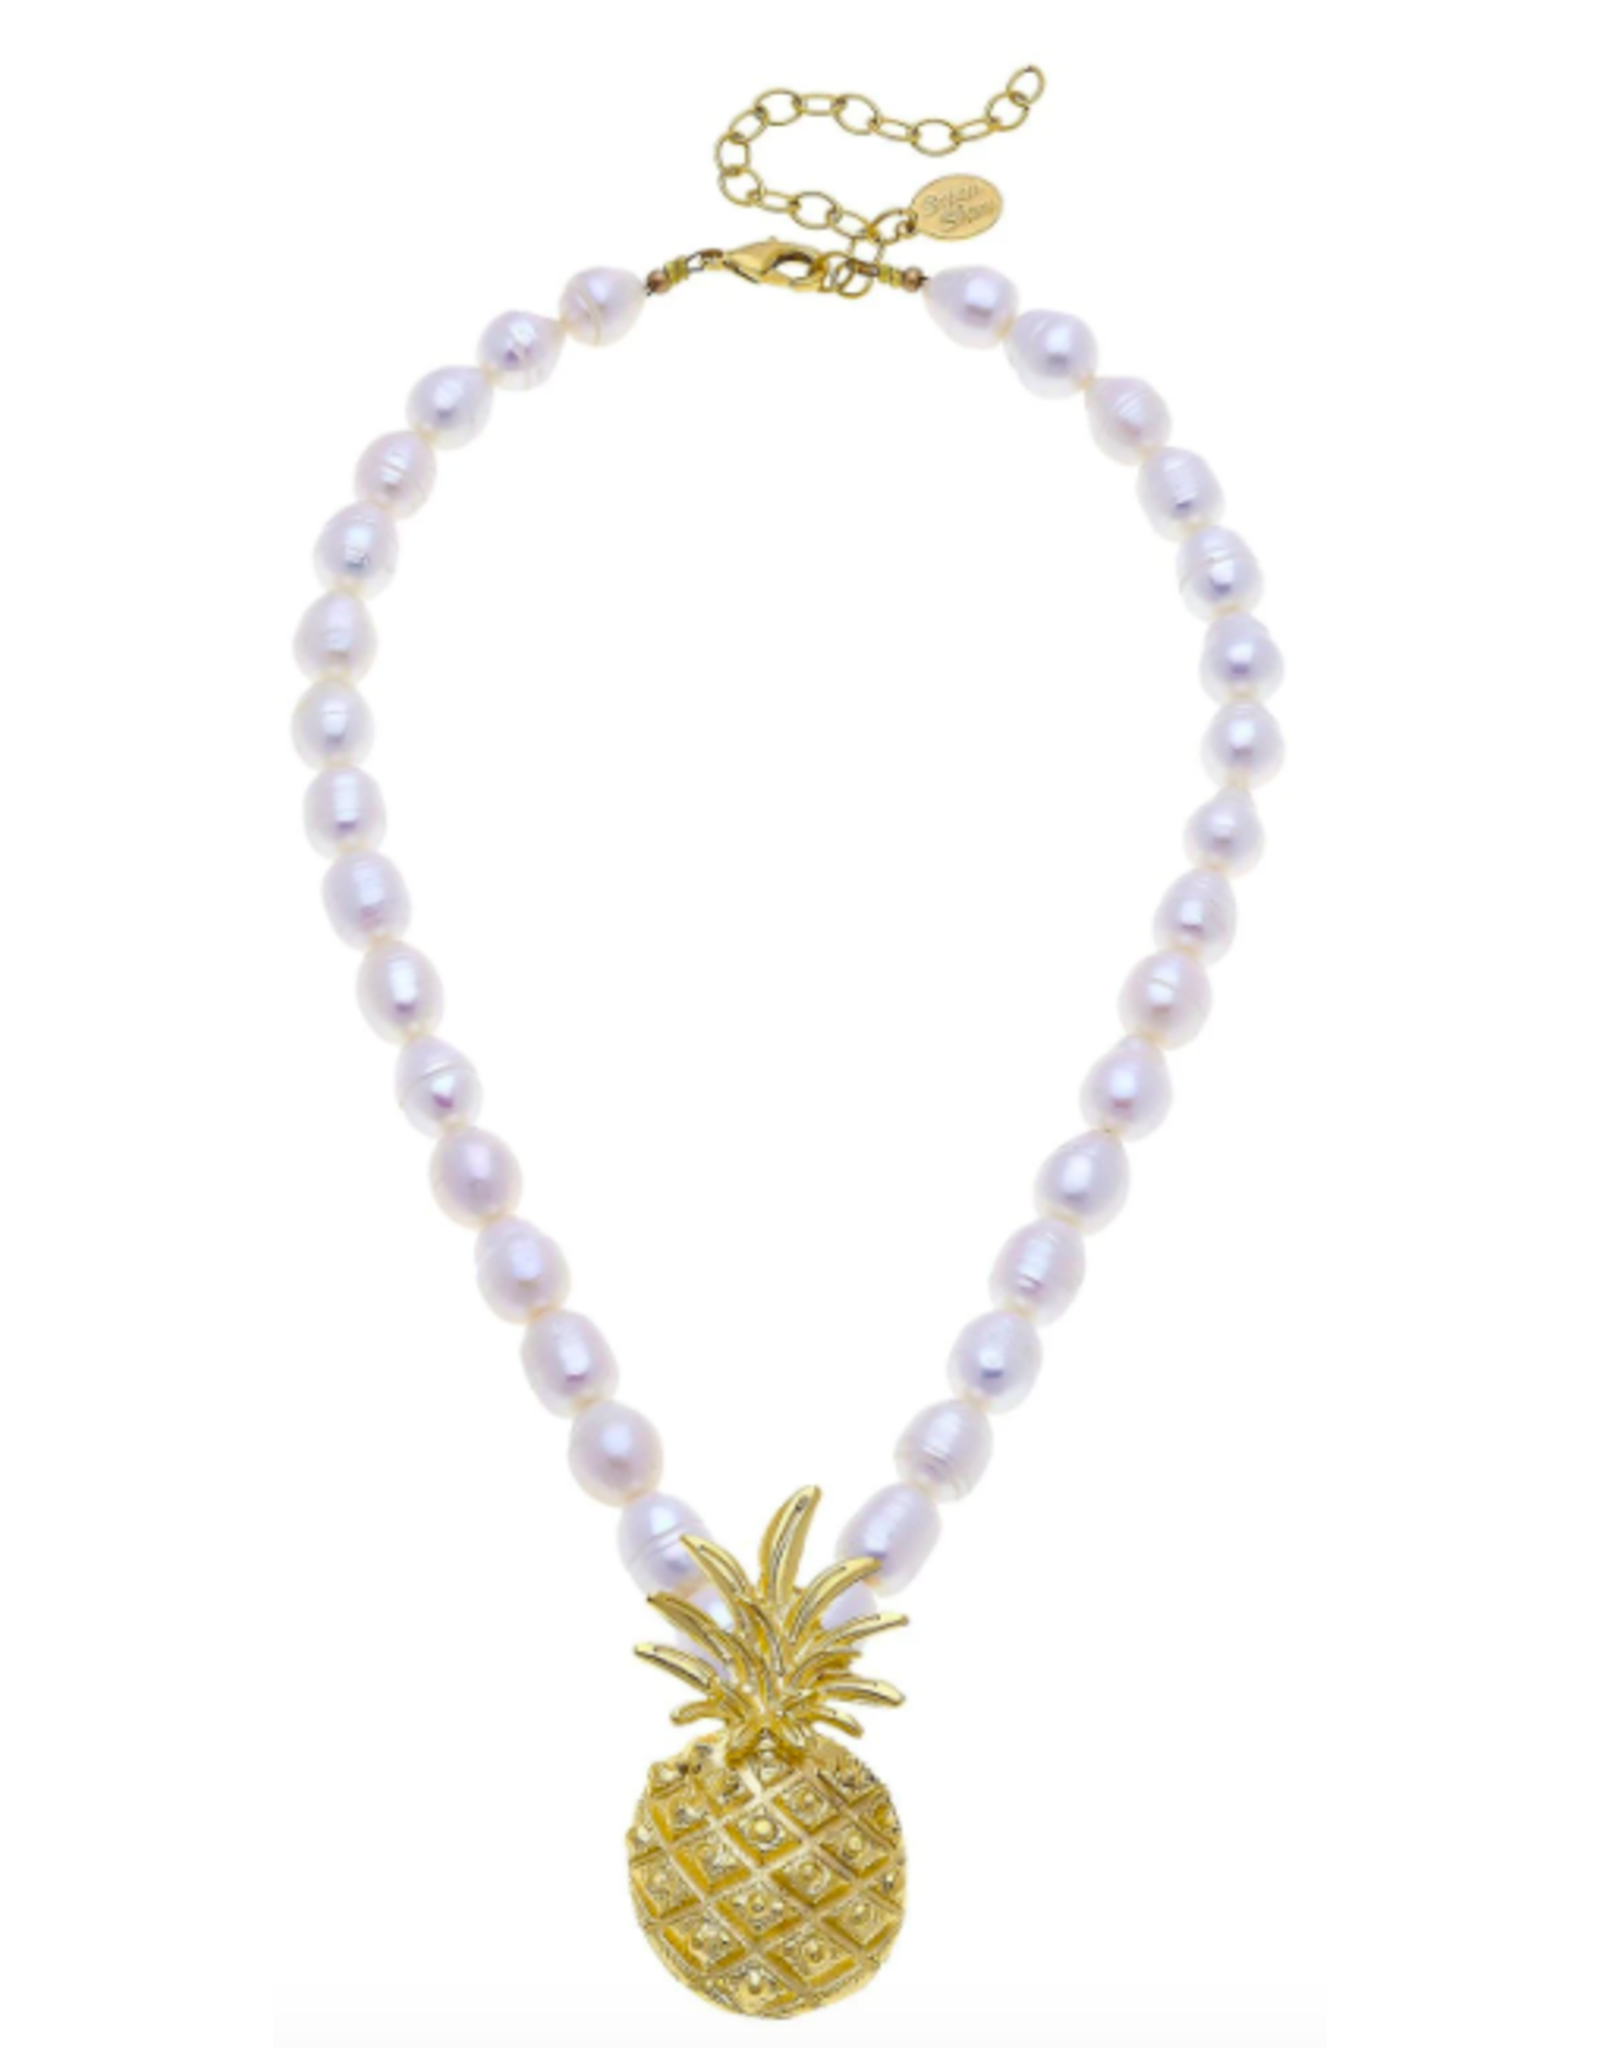 Susan Shaw Pearl & Pineapple Necklace by Susan Shaw